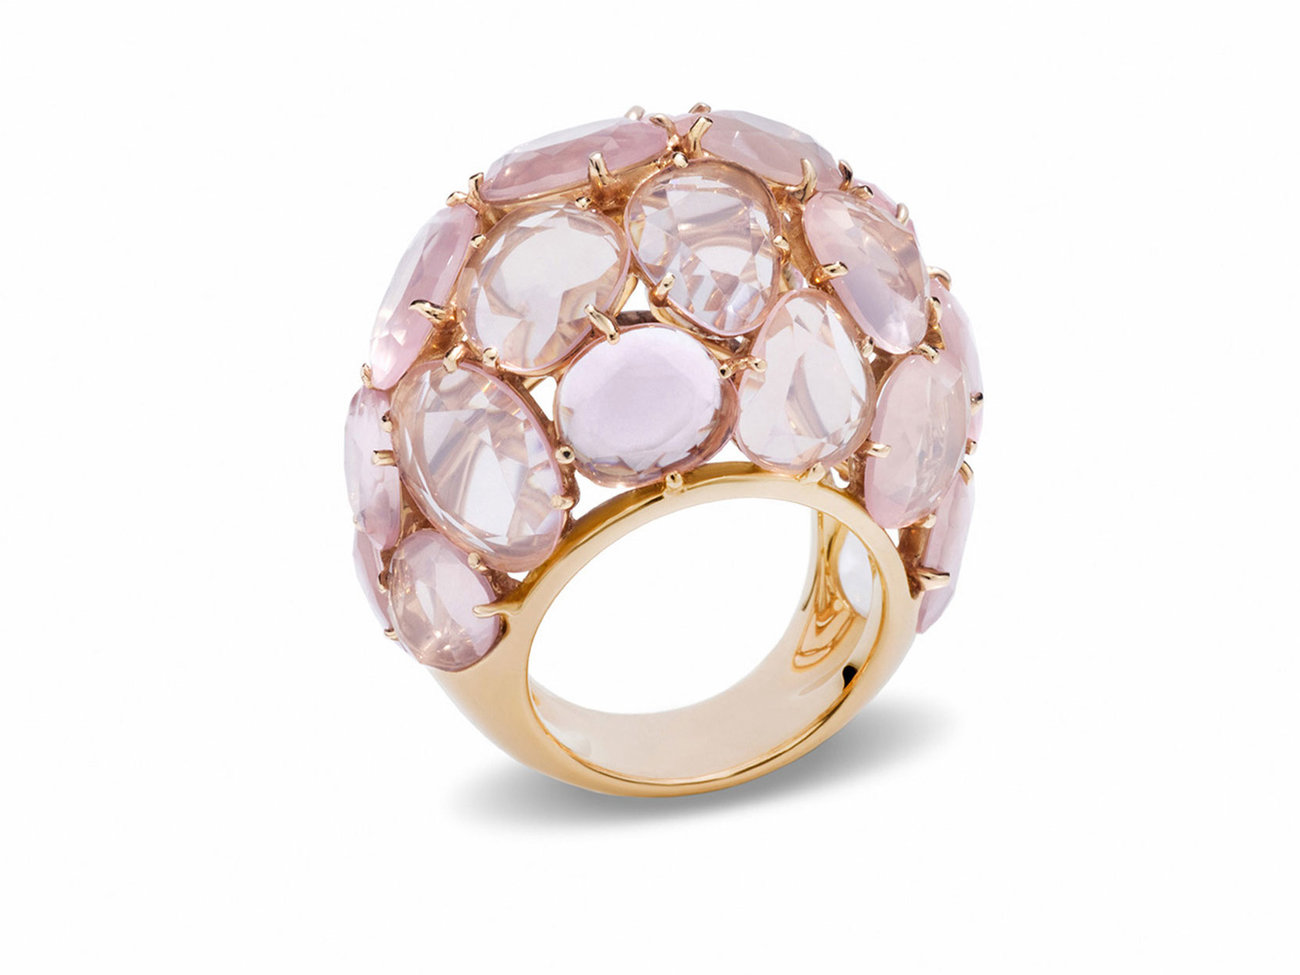 Pomellato-Collection-dome-ring--GG1215.jpg